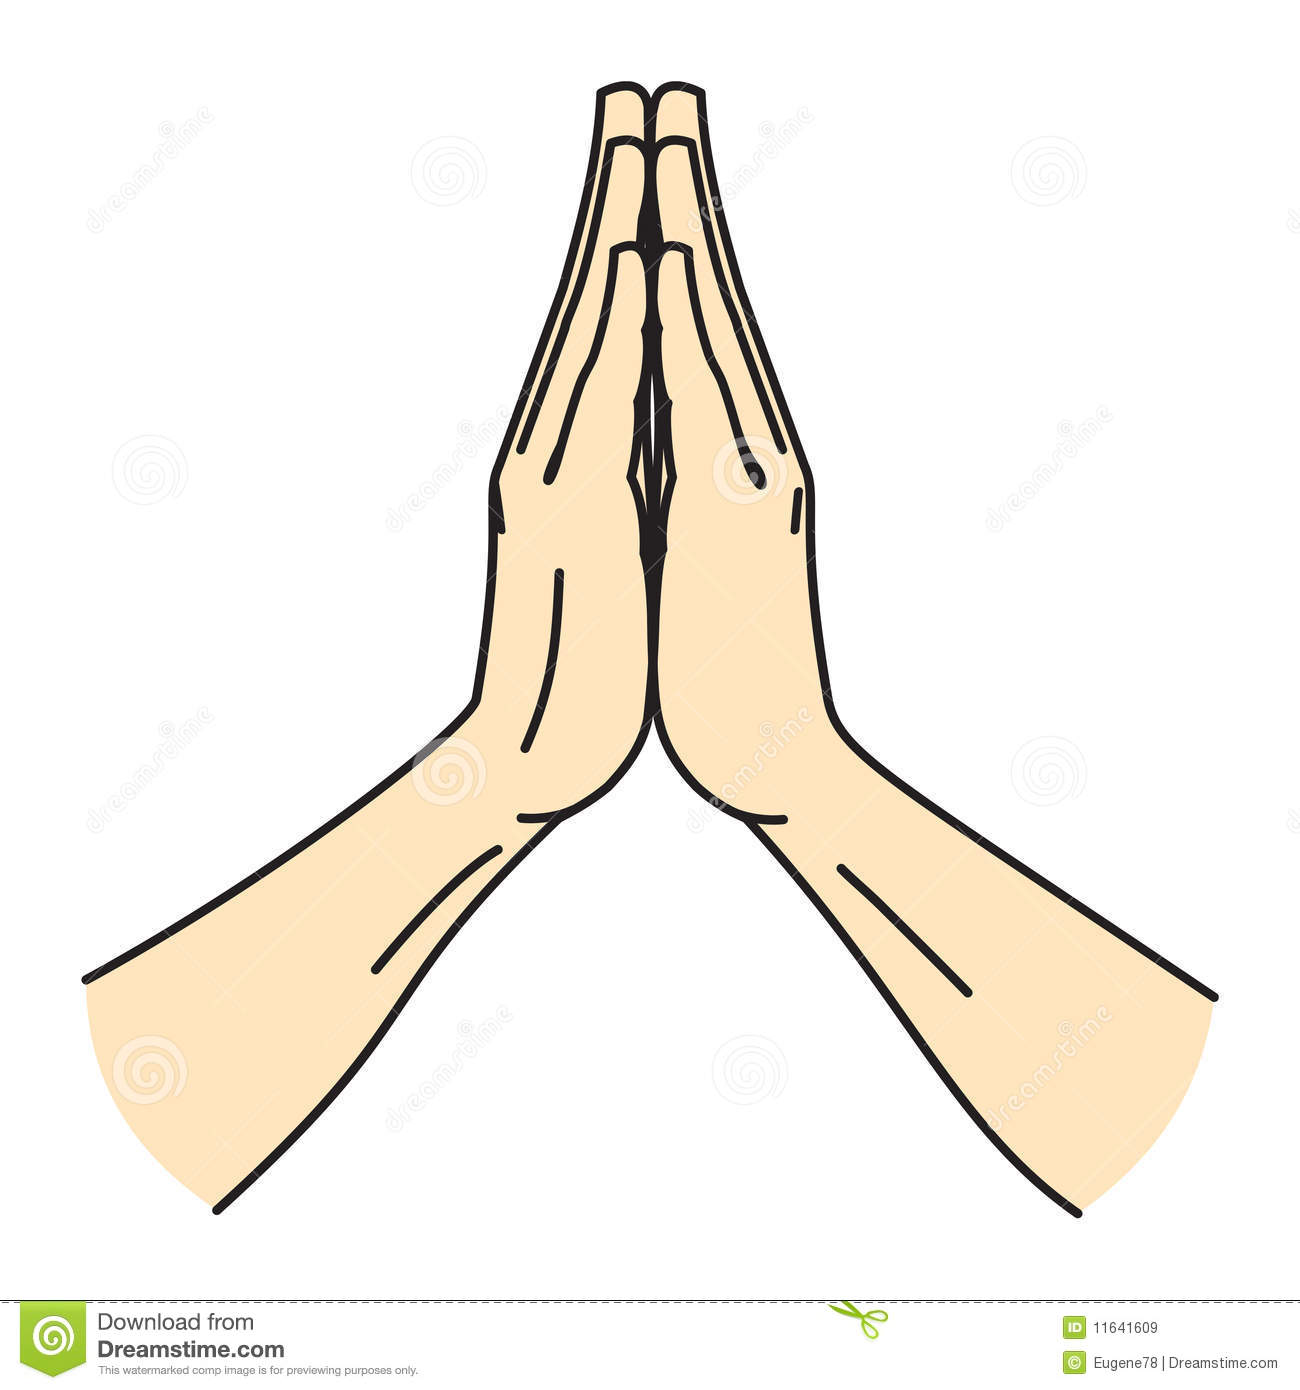 folded hands royalty free stock images image 11641609 praying hands clip art black and white praying hands clip art free download